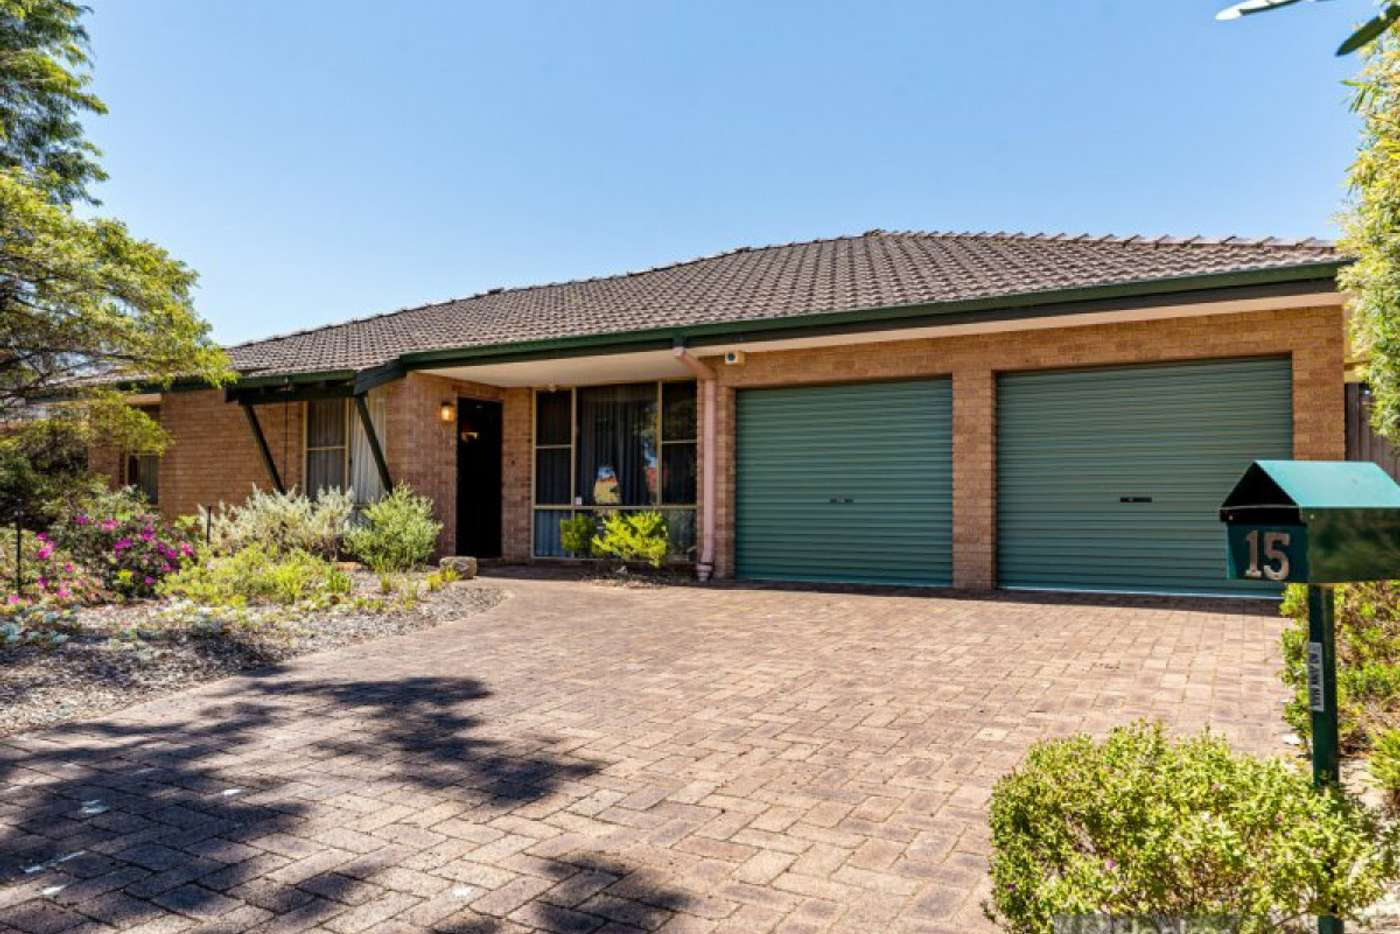 Main view of Homely house listing, 15 Demasson Rise, Leeming WA 6149